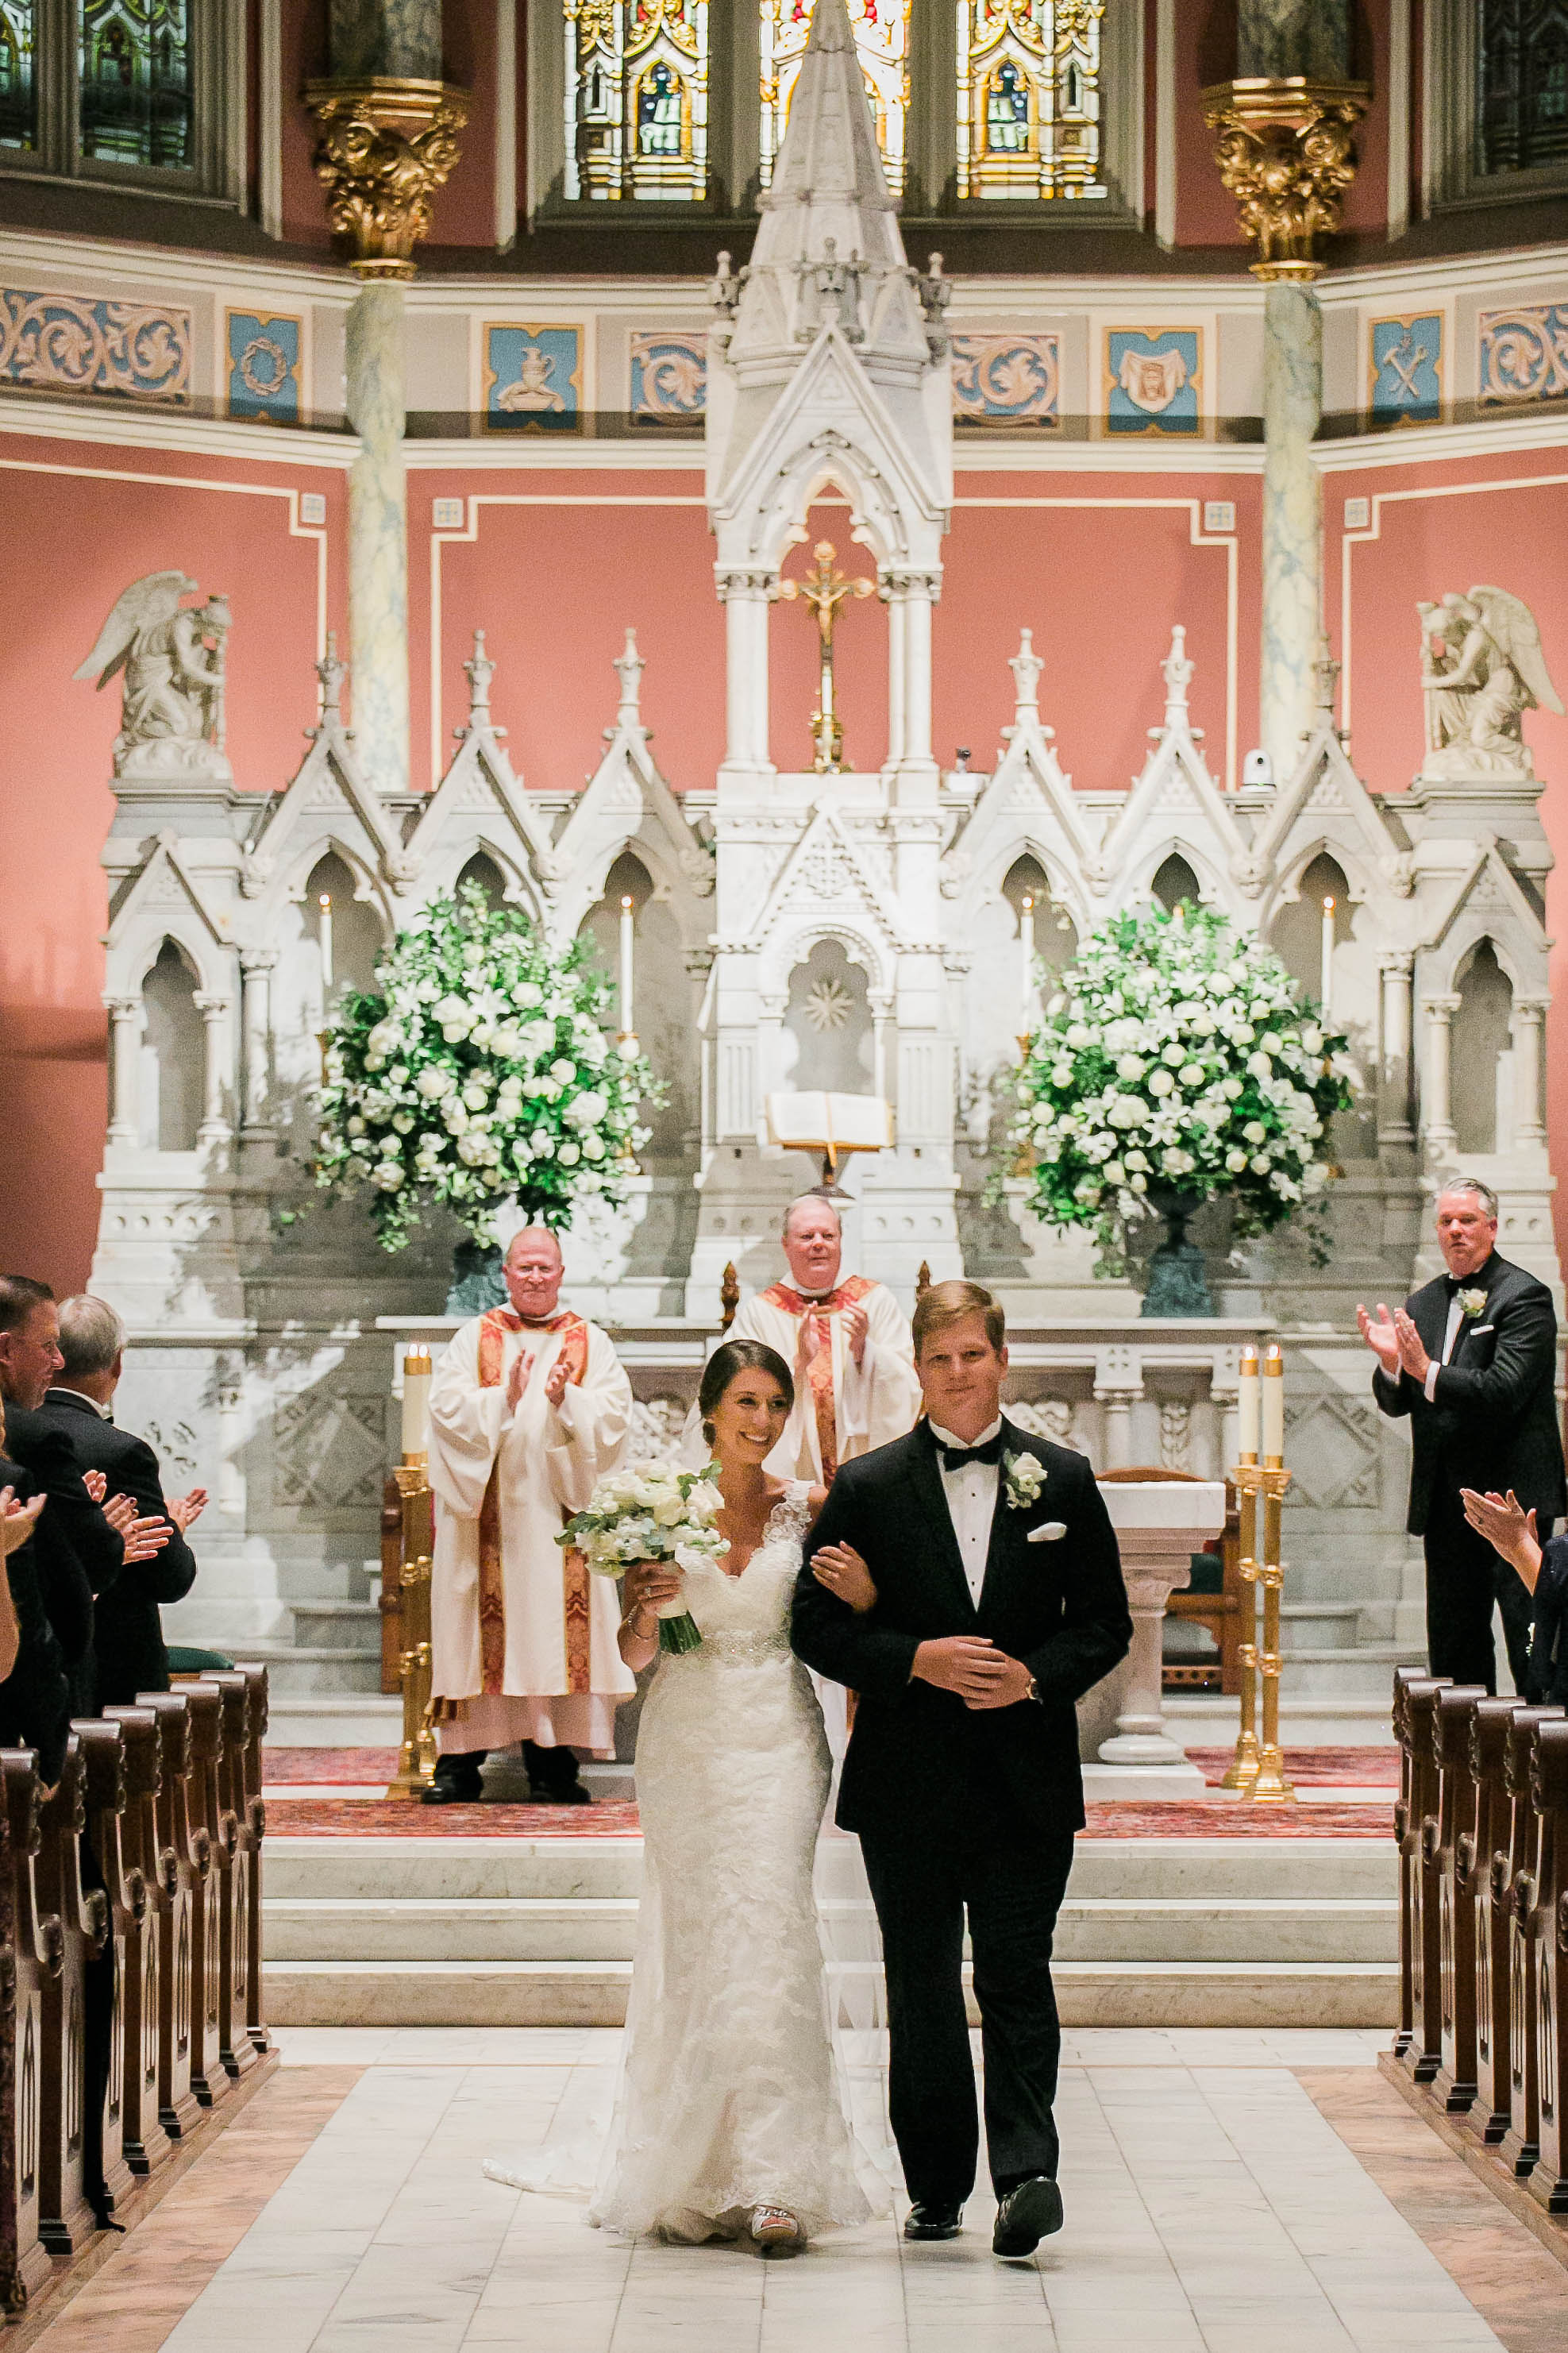 Traditional wedding ceremony at The Cathedral of St. John the Baptist in Savannah, Georgia